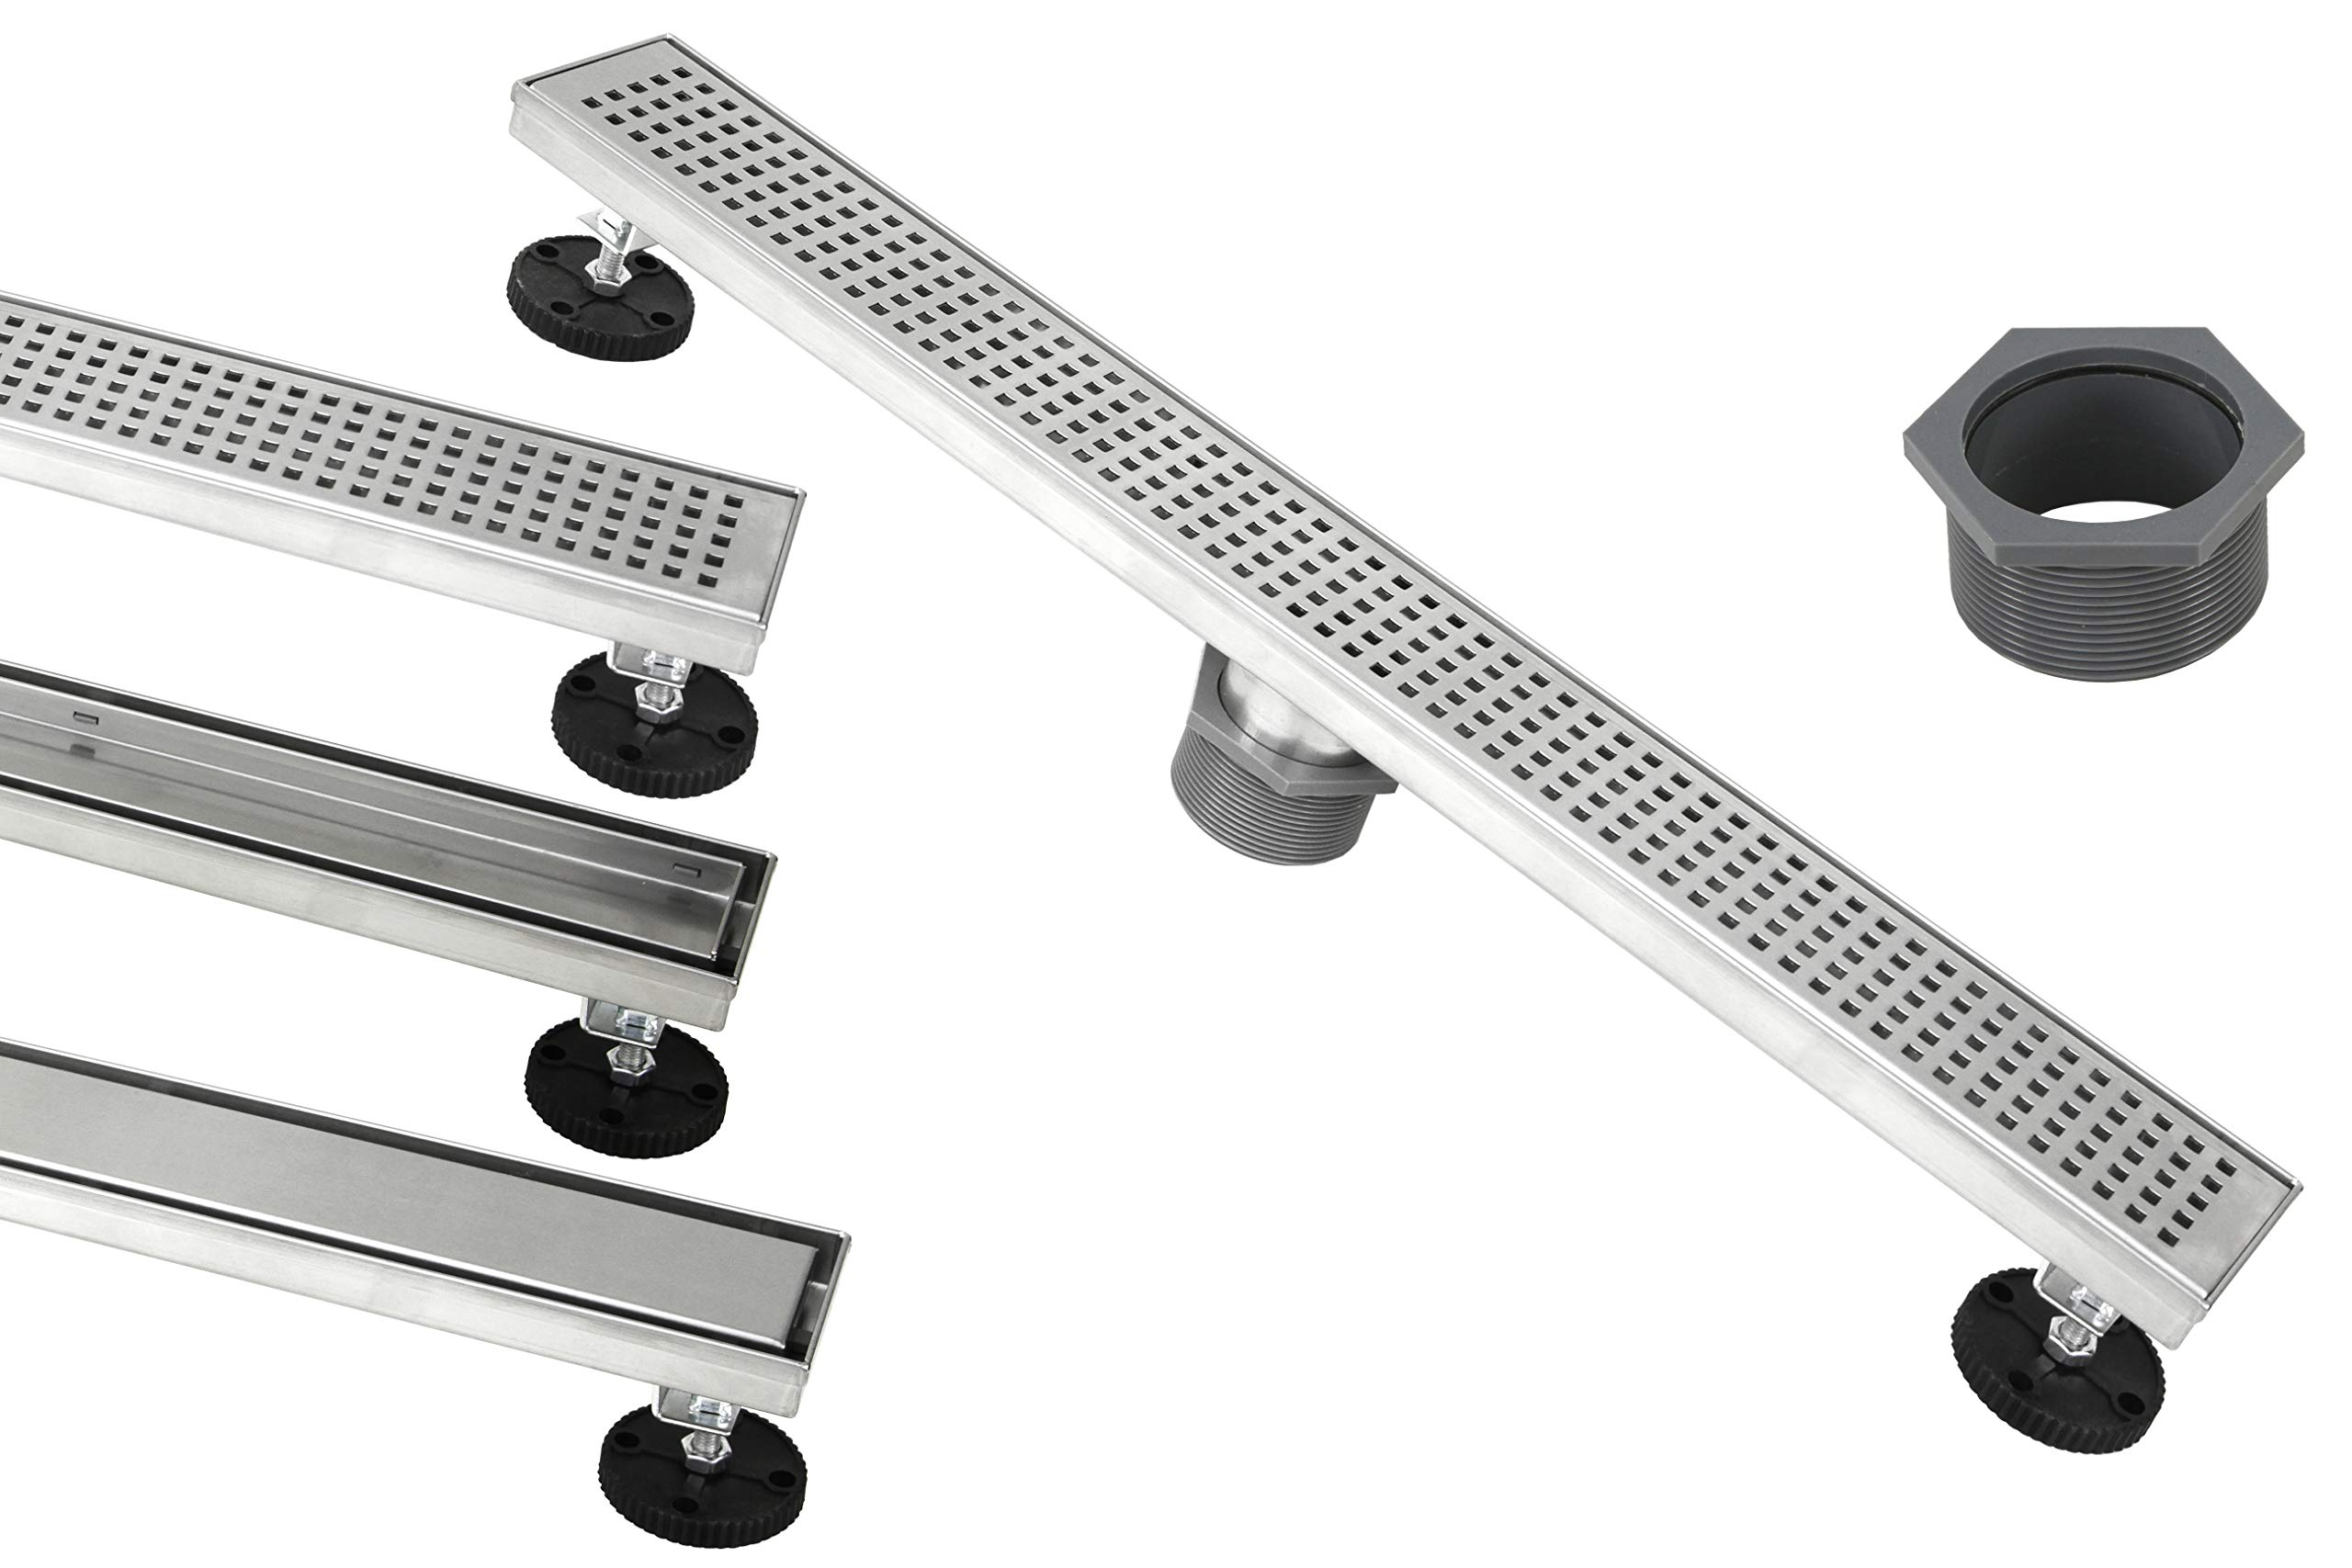 Shower Linear Drain 48 Inch - Square Checker Pattern Grate - Brushed 304 Stainless Steel - Bonus 2-Sided Tile Insert & Flat Grate and Threaded Adaptor - Adjustable Leveling Feet (48 Inch)